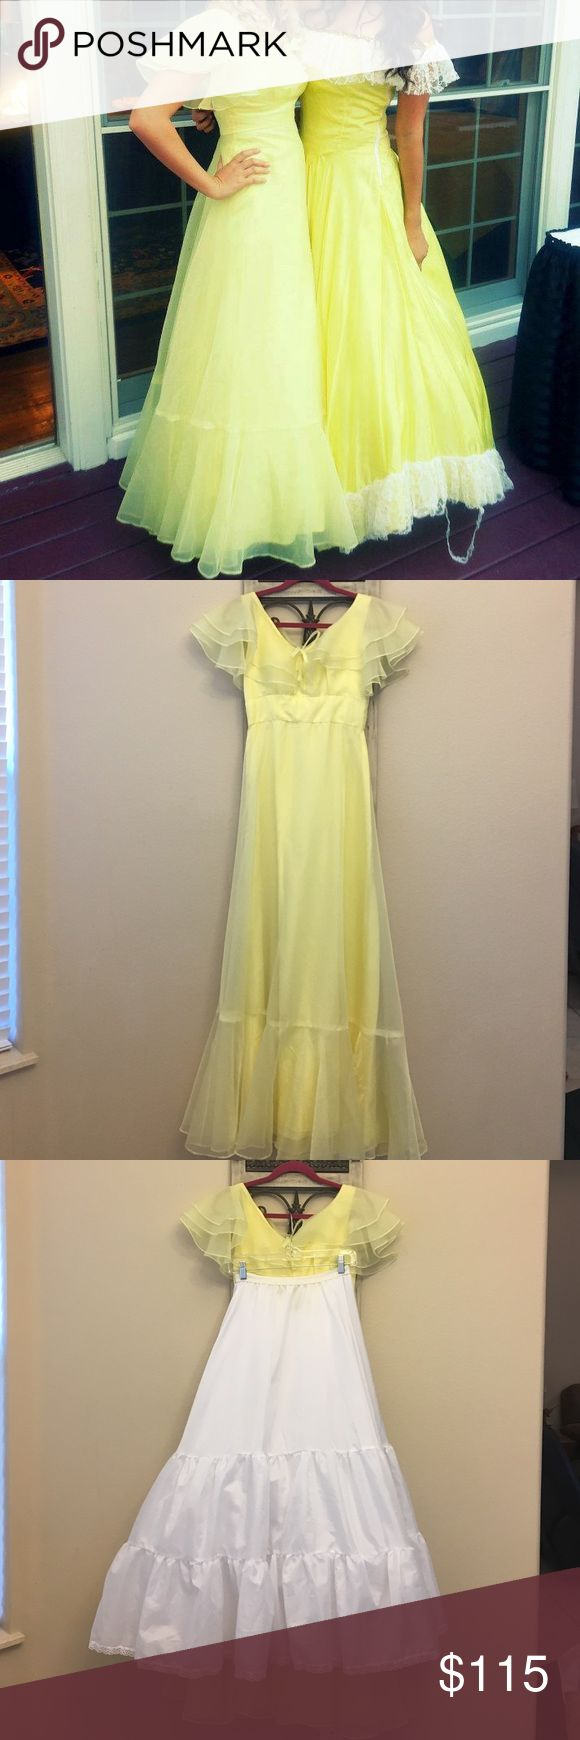 Yellow southern belle dress with crinoline skirt This gown is so pretty and is perfect for Old South, costume parties, or any other occasion when you want to look like a southern belle. Comes with crinoline skirt to add fullness. The stitching by the zipper is coming out but this is an easy fix and does not affect the zipper. There are also very minor pulls in the fabric at the bottom, but are not noticeable when worn. Waist is 26 in and length from shoulder to floor is 57 inches. Open to…